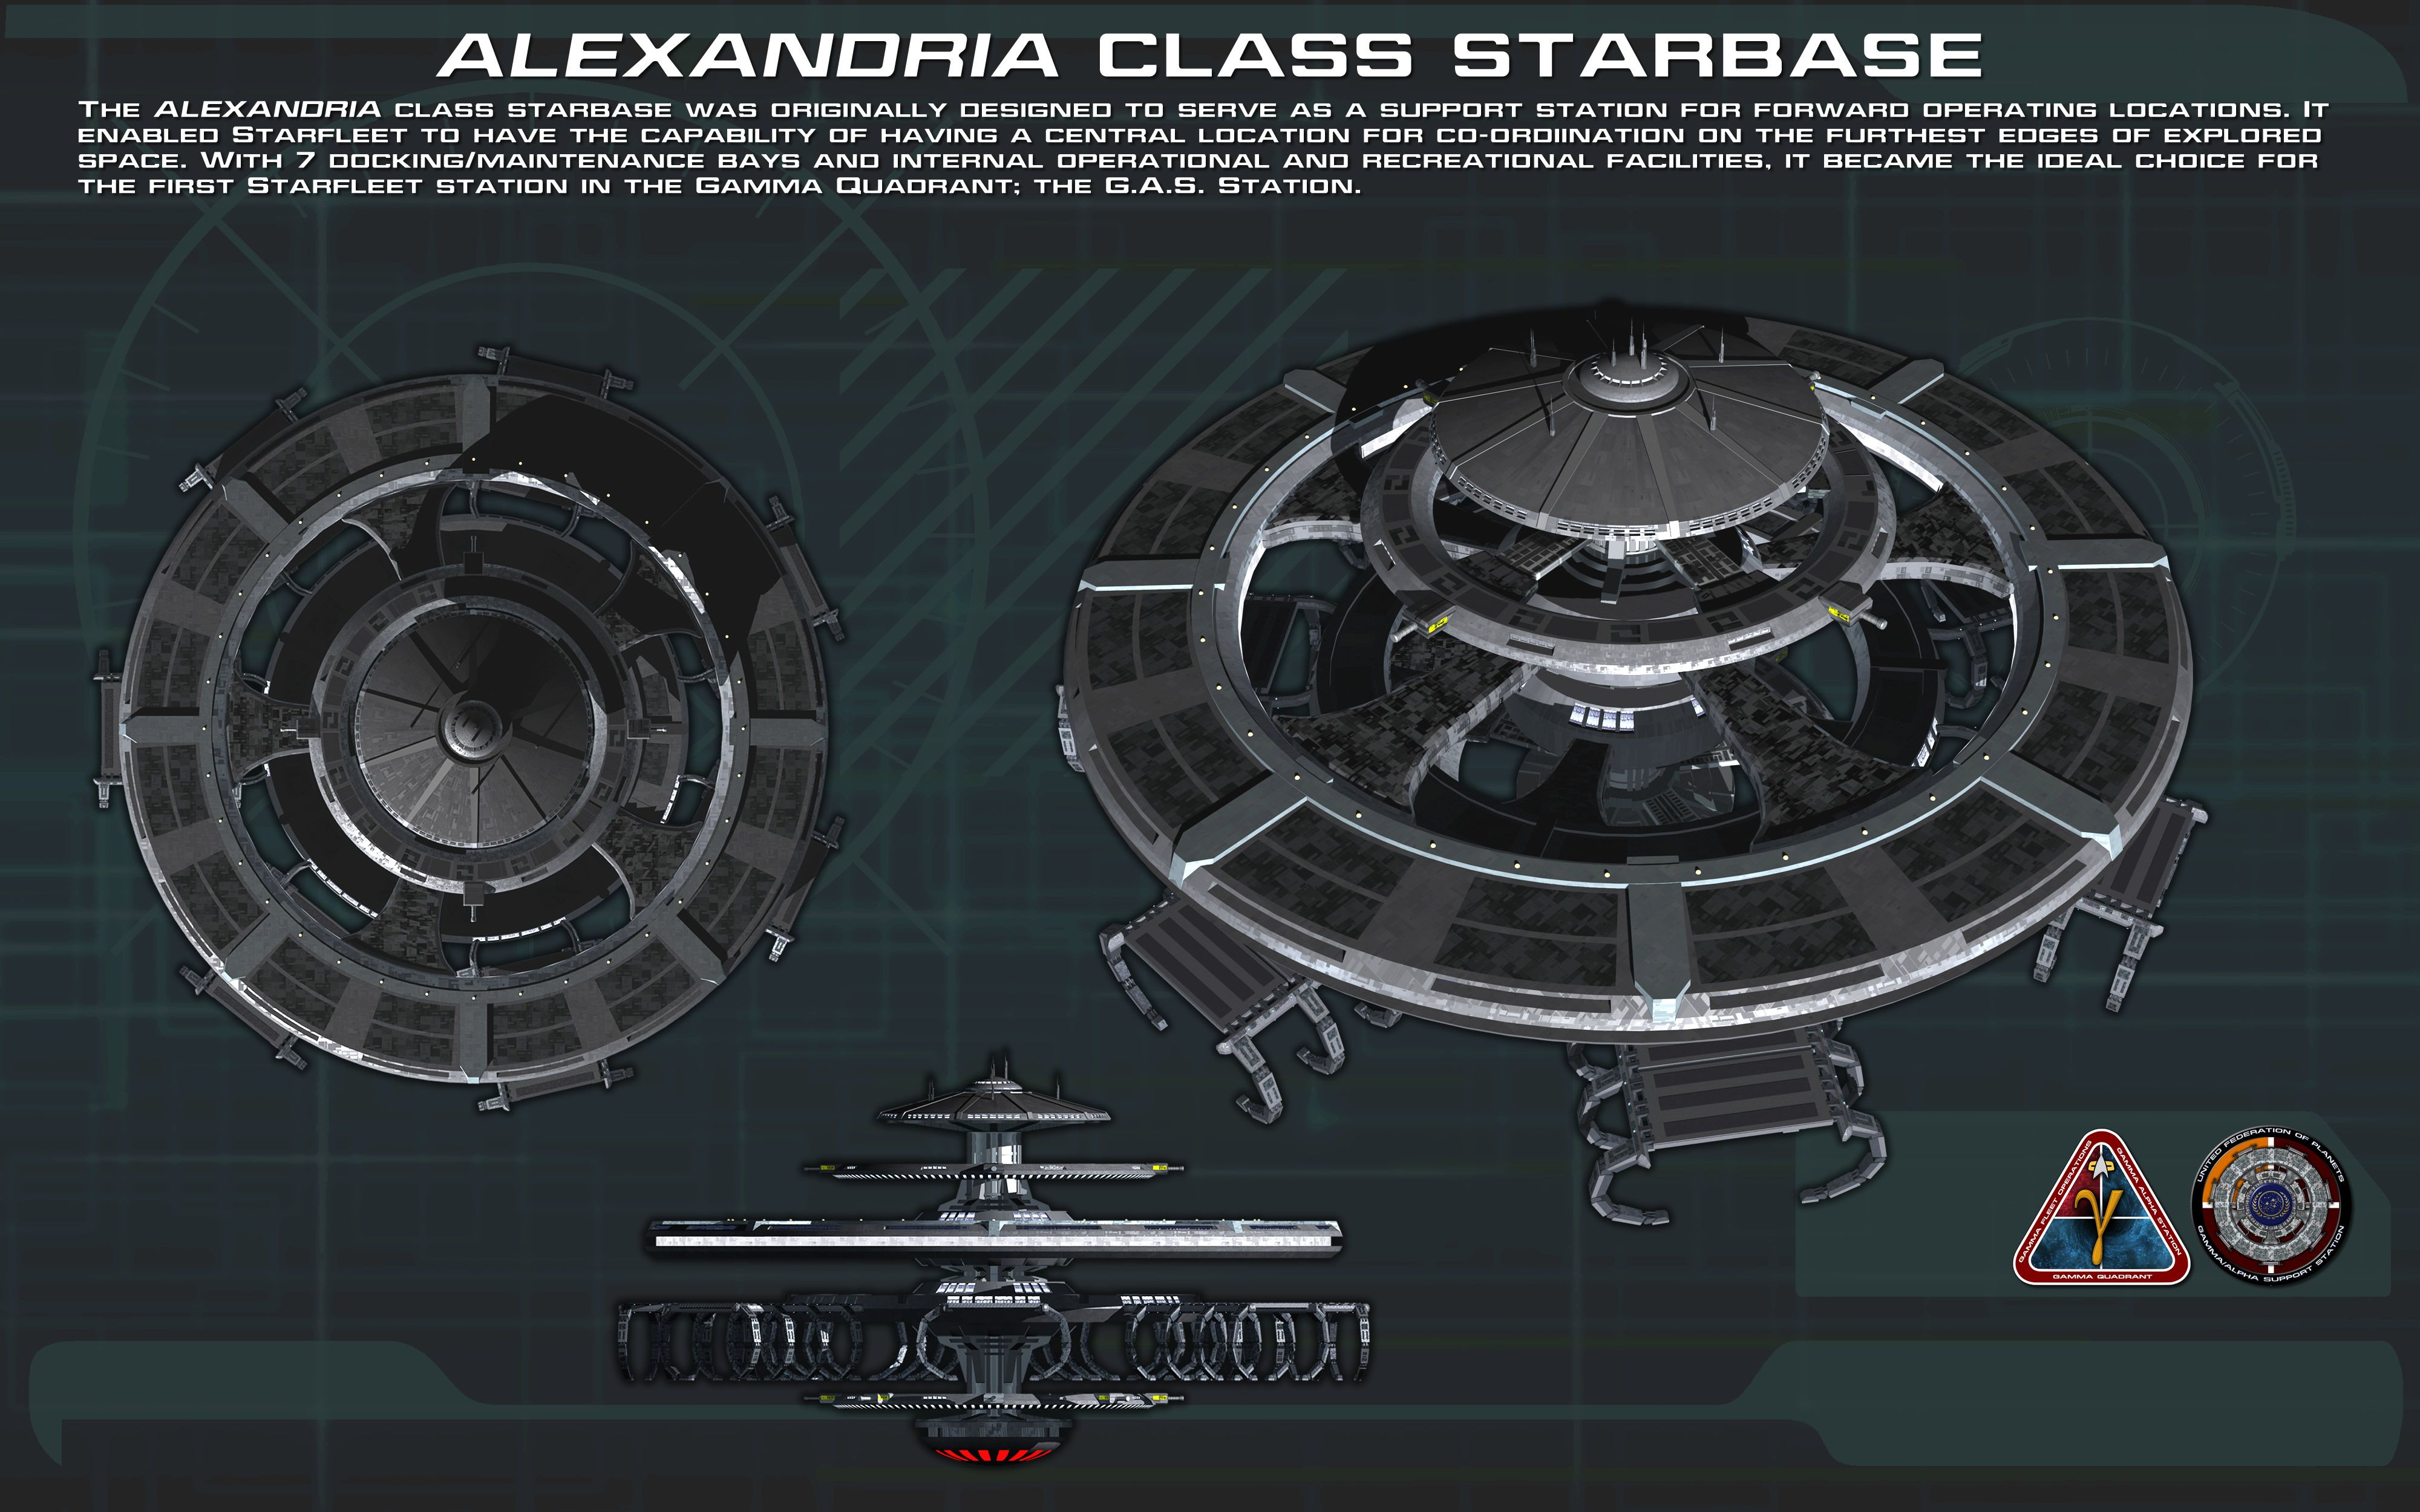 Alexandria class starbase ortho New by unusualsuspex